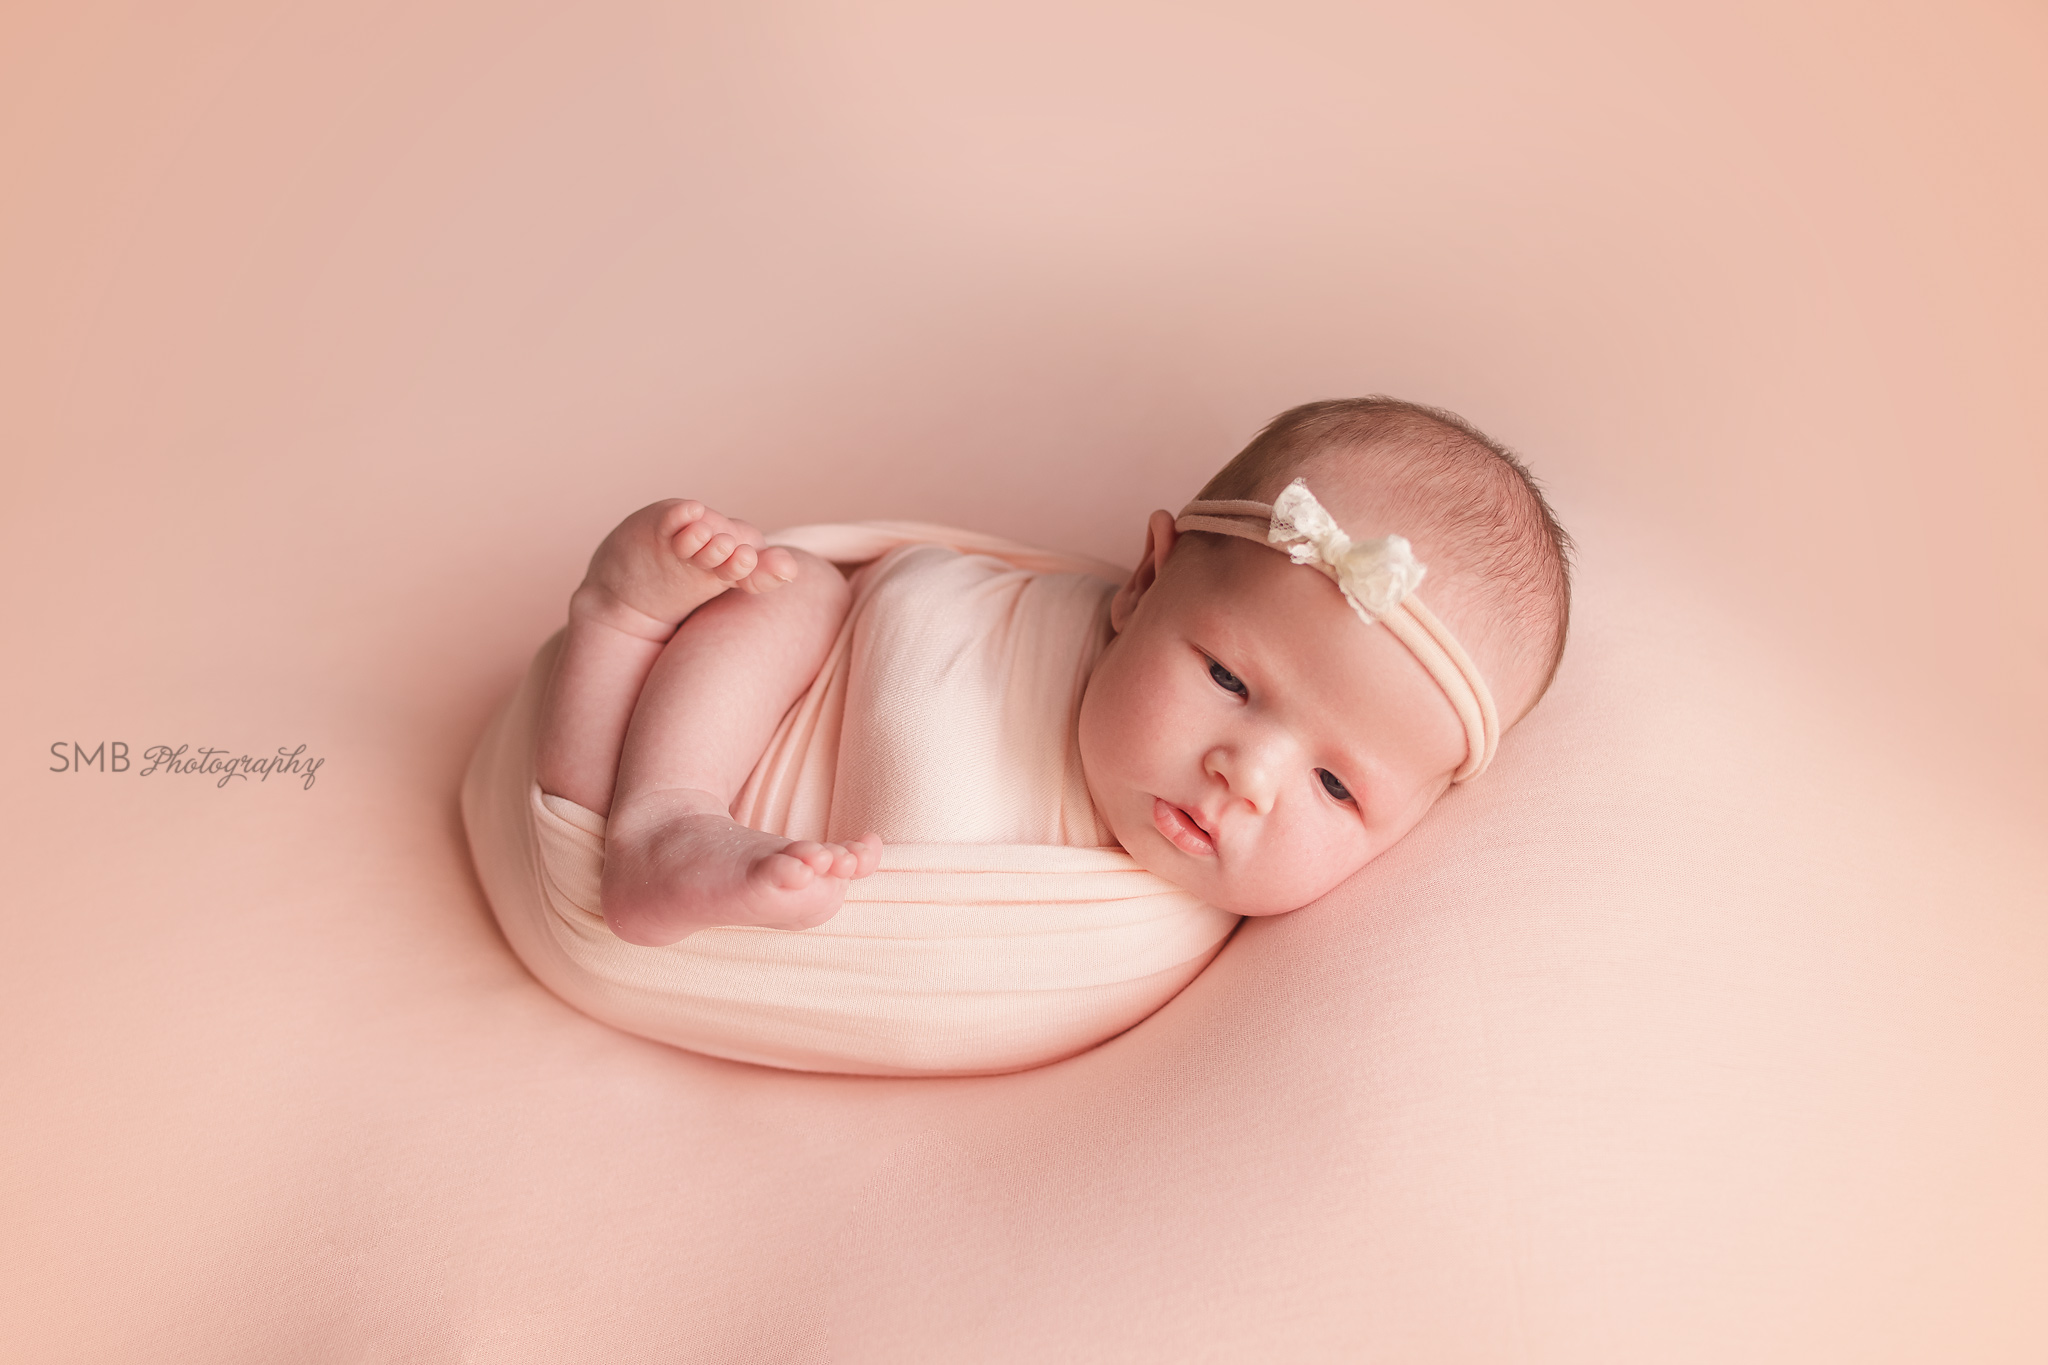 Newborn girl wrapped on pale peach blanket with eyes open